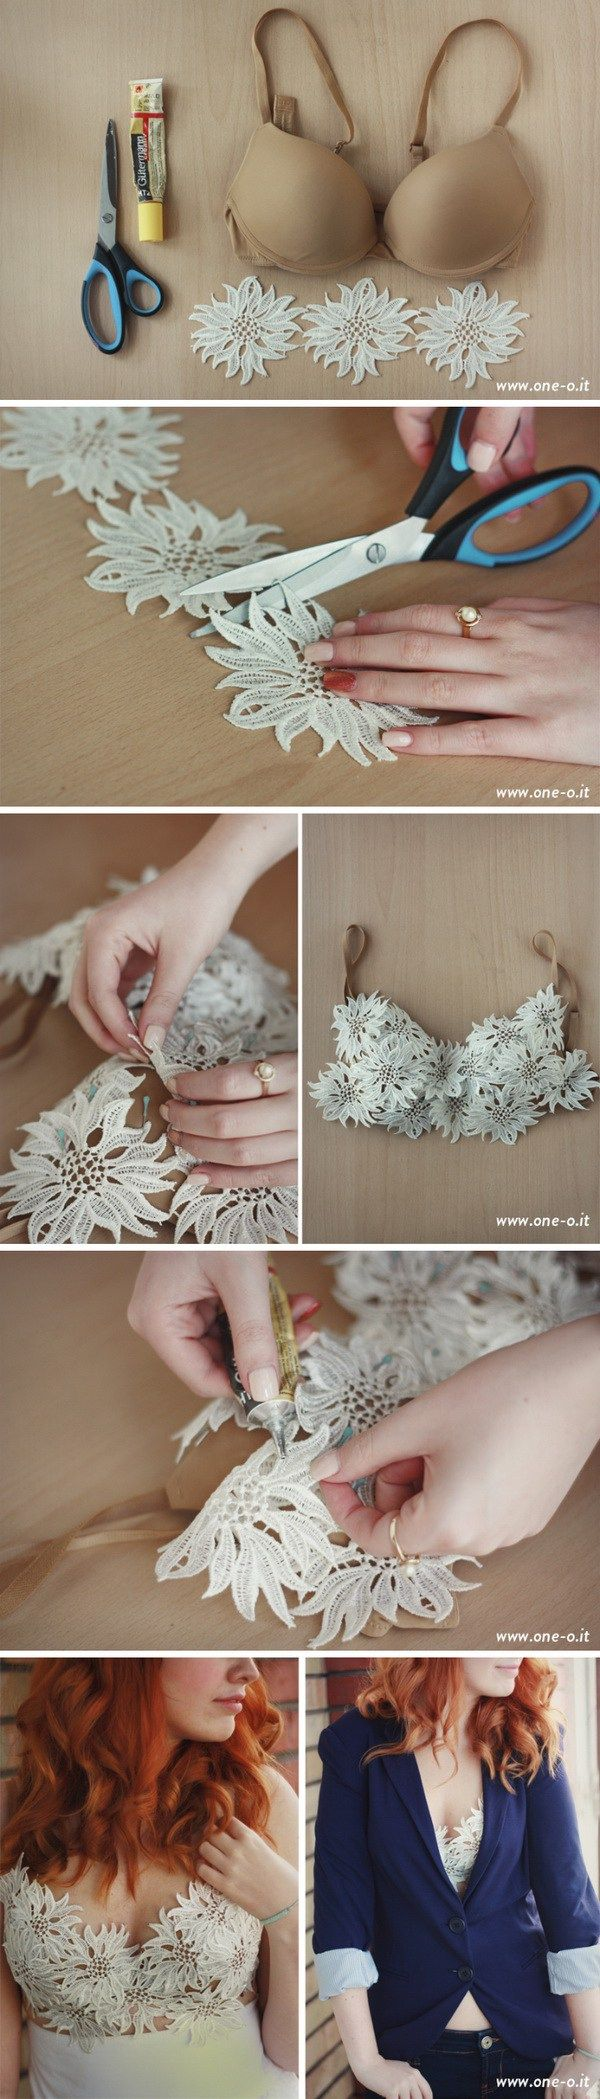 DIY Easy Lace Bra Top.